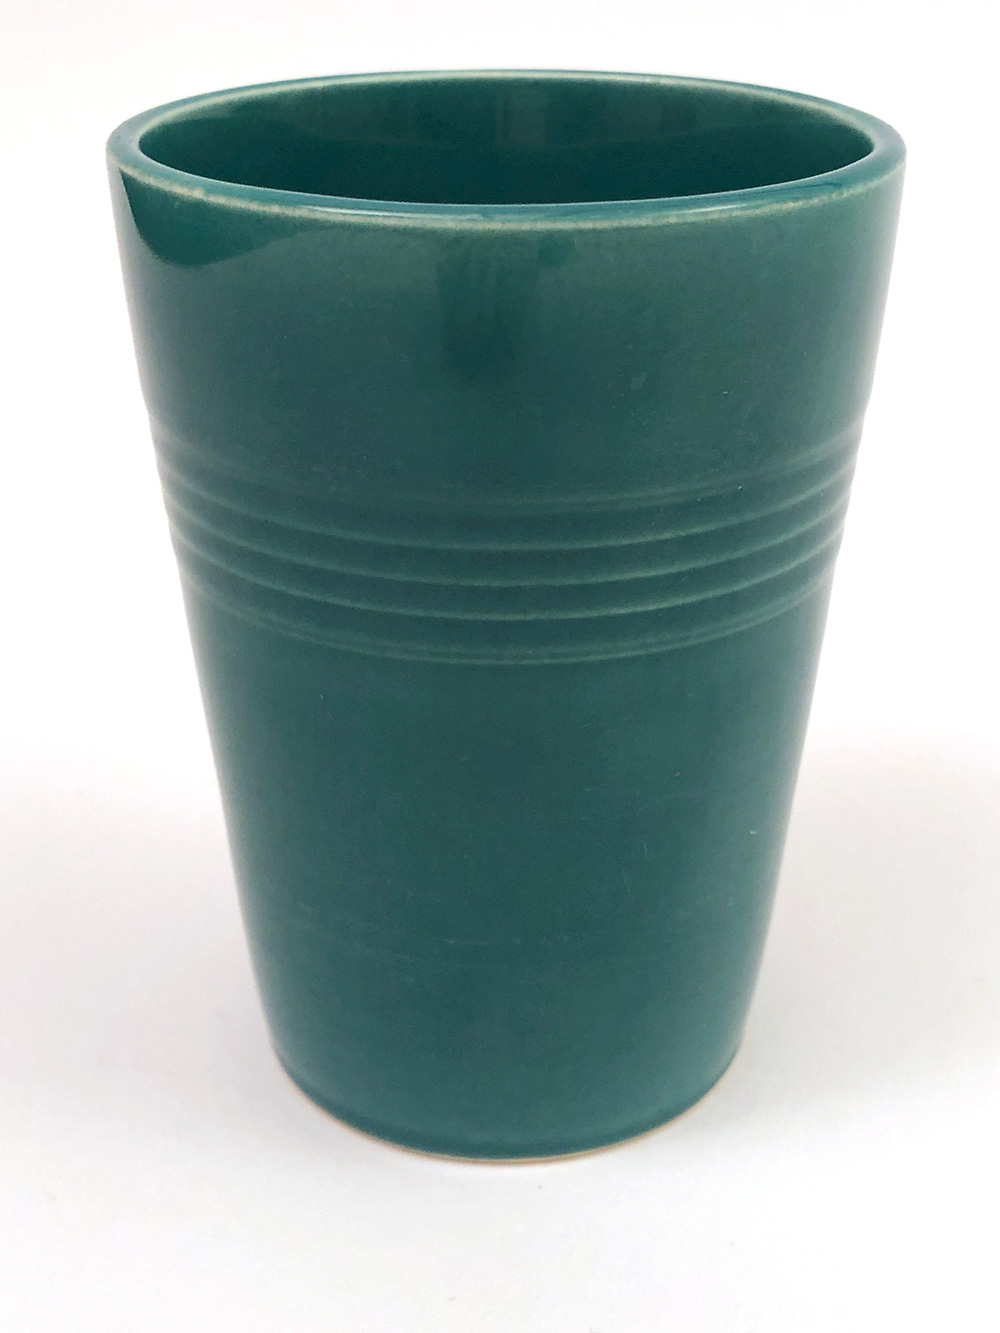 spruce green harlequin homer laughlin tumbler for sale